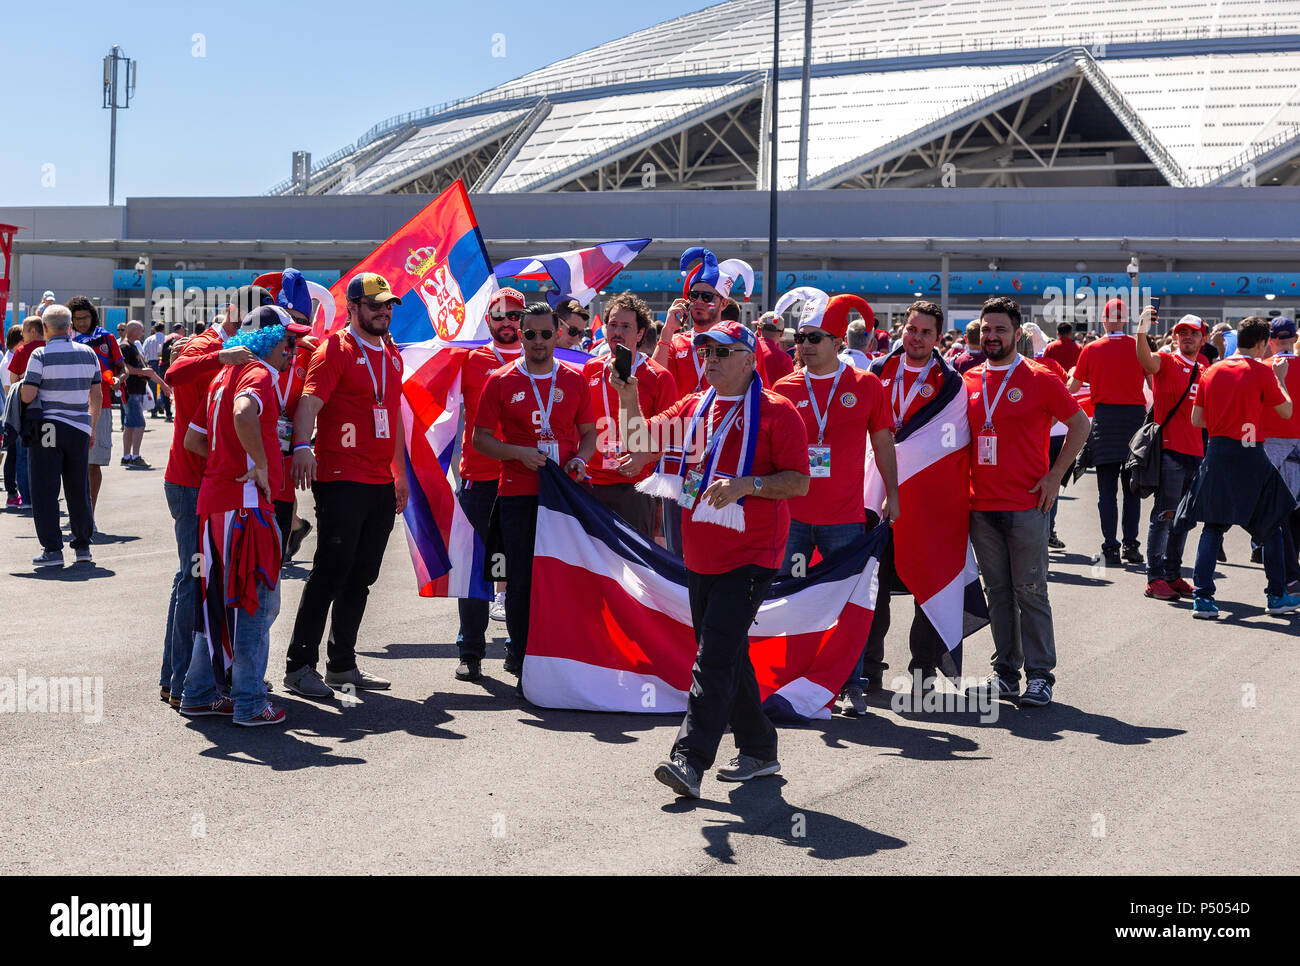 Samara, Russia - June 17, 2018: Merry and decorated football fans with flags of Costa Rica next to the Samara Arena stadium during the 2018 FIFA World - Stock Image